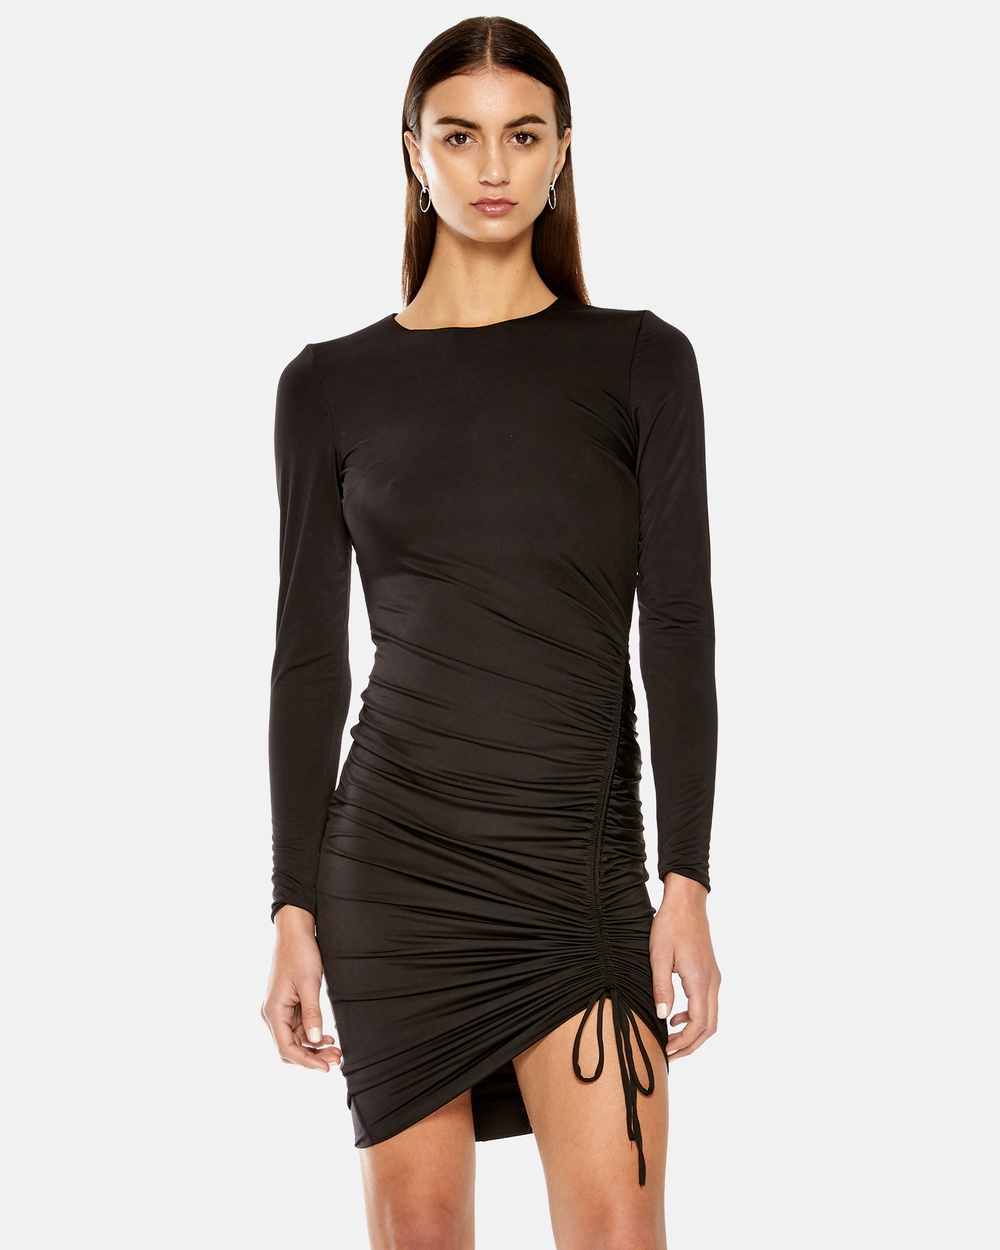 Maniera Black Long Sleeve Drawstring Dress